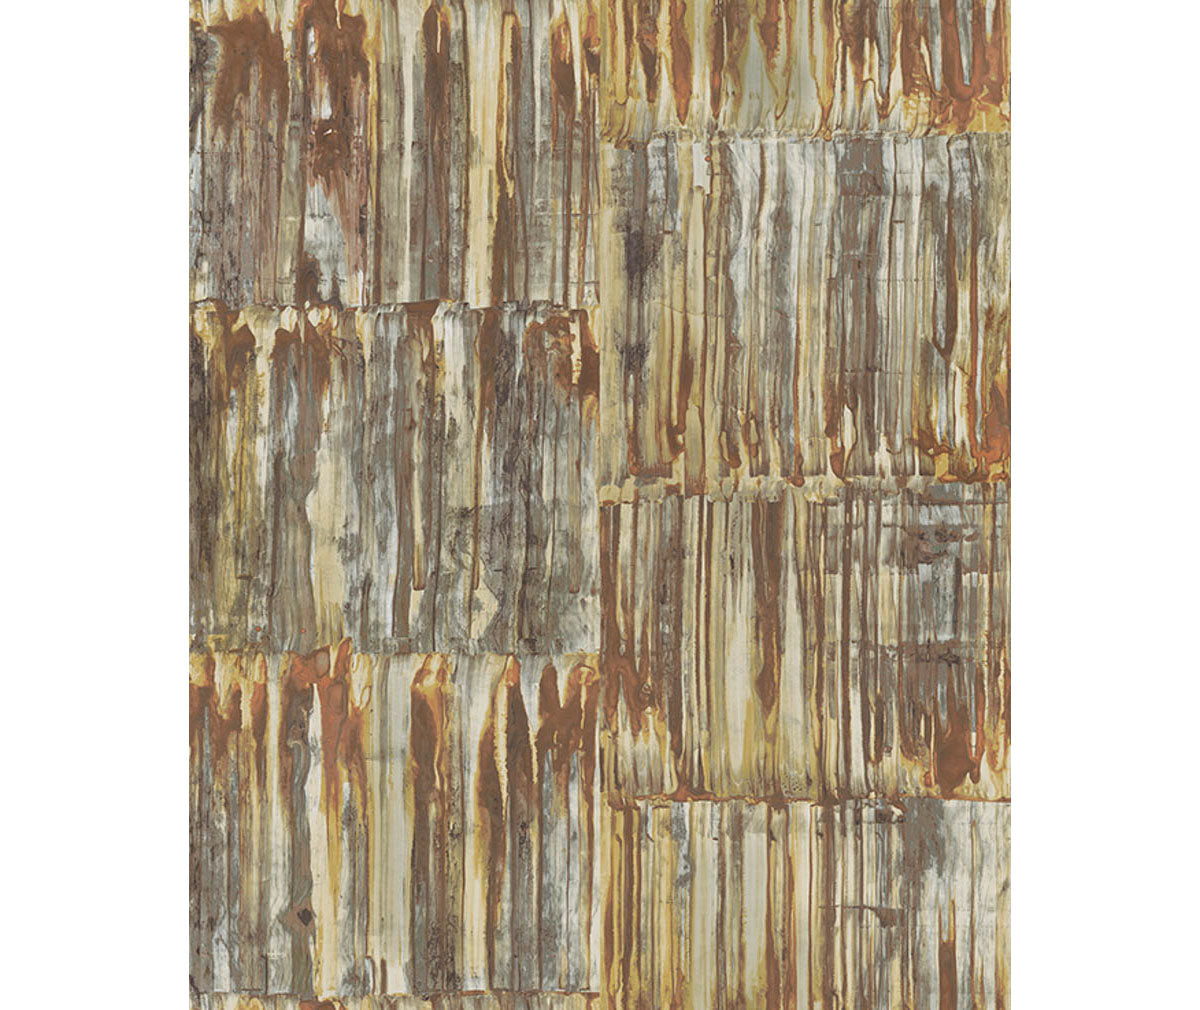 Patina Panels Copper Metal Wallpaper available at Barrydowne Paint